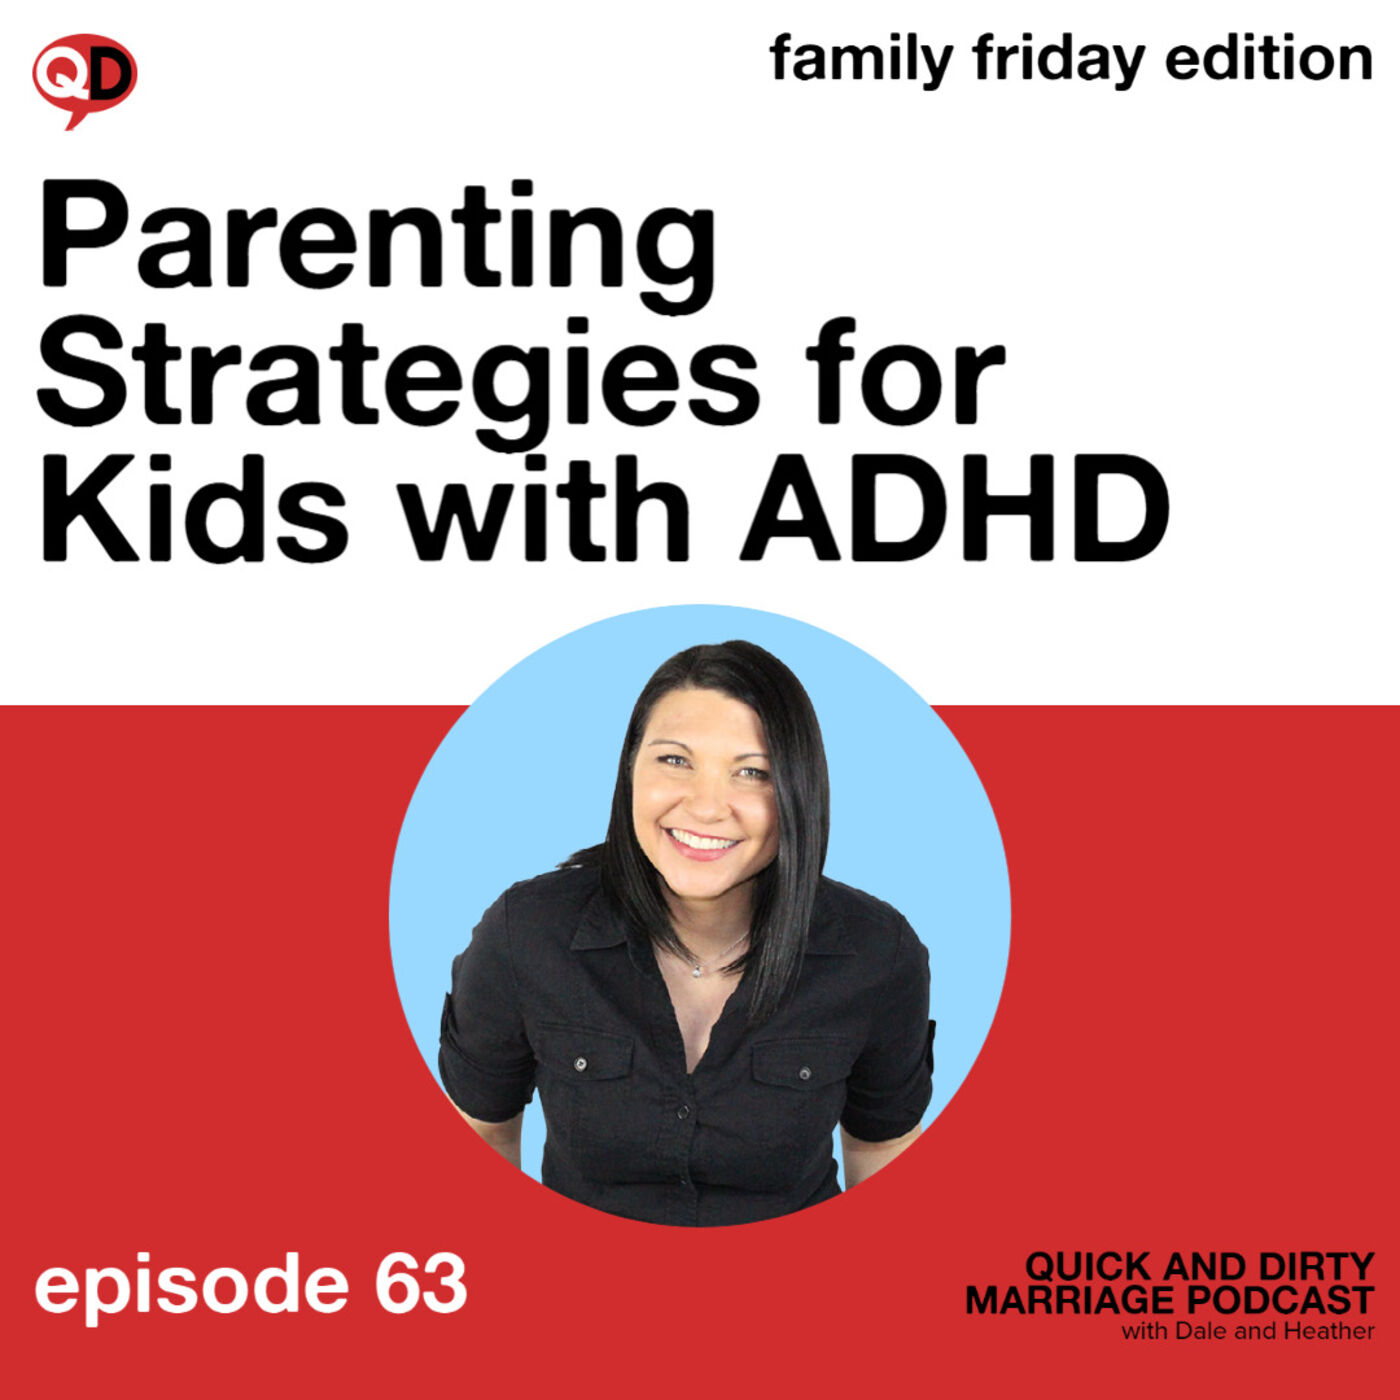 (FF) Parenting Strategies for Kids with ADHD